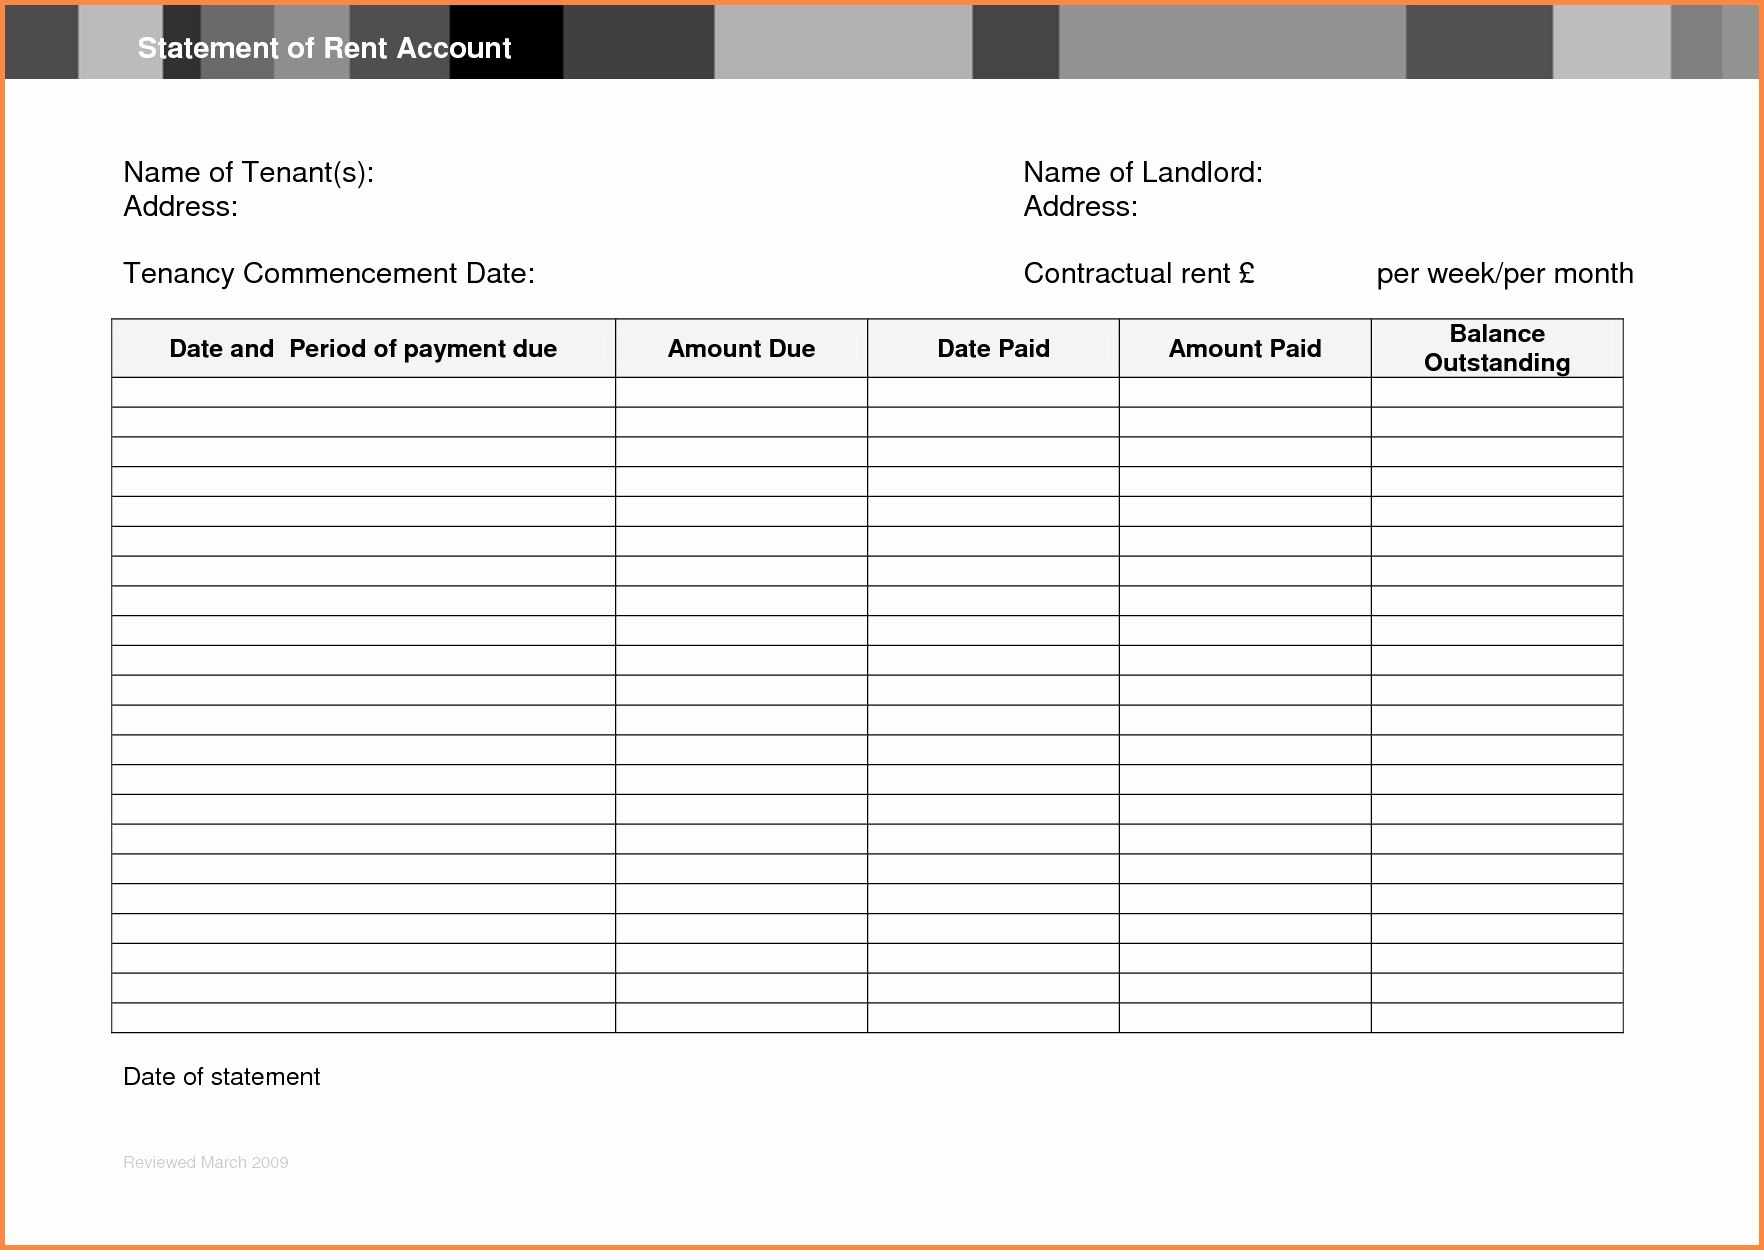 Invoice Record Keeping Template Excel Free Farm Spreadsheets Fresh With Regard To Invoice Record Keeping Template